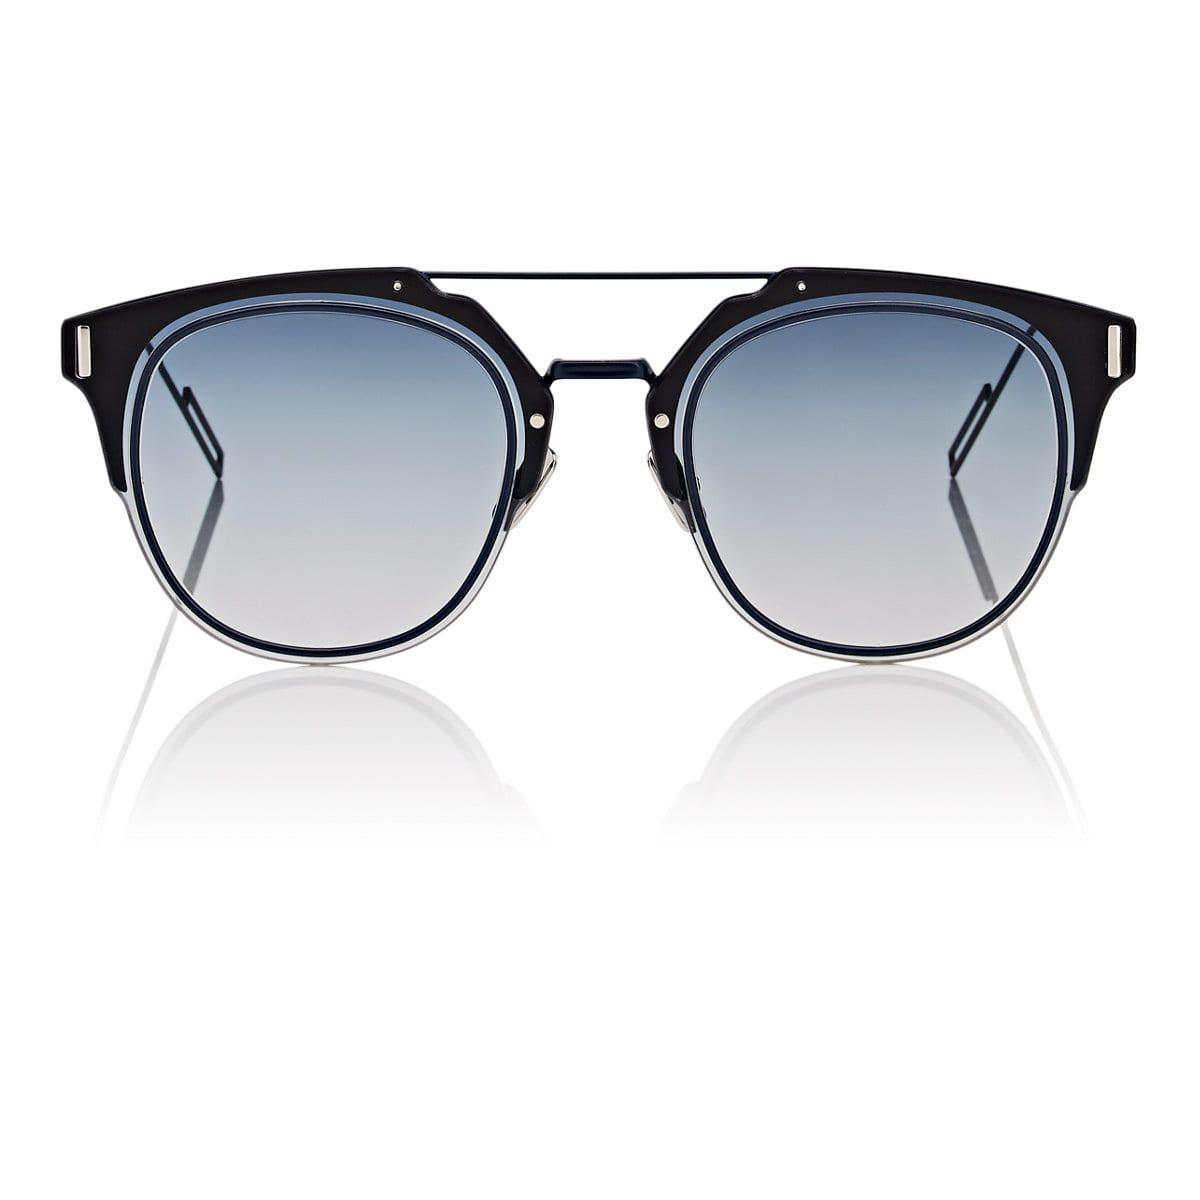 041e872c12 Lyst - Dior Homme diorcomposit1.0 Sunglasses in Blue for Men